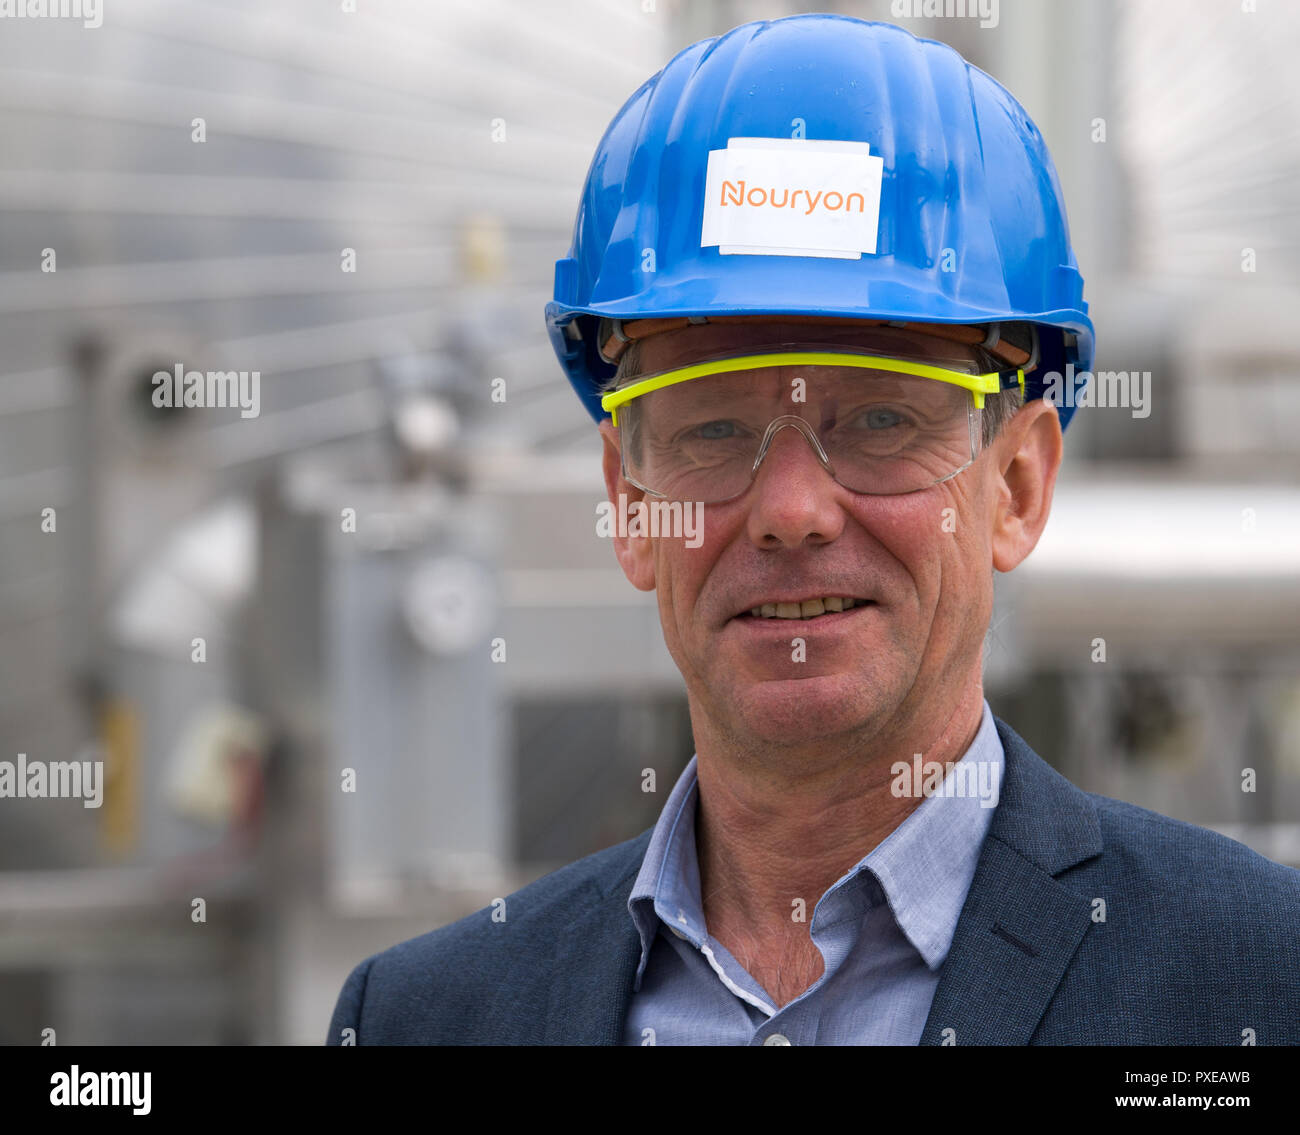 Bitterfeld Wolfen, Germany. 22nd Oct, 2018. Stefan Kauerauf, plant manager of the chemical company Nouryon, stands in front of a plant in the chemical park. The former AkzoNobel Specialty Chemicals now operates as an independent company under the name Nouryon. The division was taken over by the US Carlyle Group. In Bitterfeld, the company operates a chlor-alkali electrolysis plant. Credit: Hendrik Schmidt/dpa-Zentralbild/dpa - ACHTUNG: Nur zur redaktionellen Verwendung im Zusammenhang mit der Berichterstattung über Nouryon/dpa/Alamy Live News Stock Photo